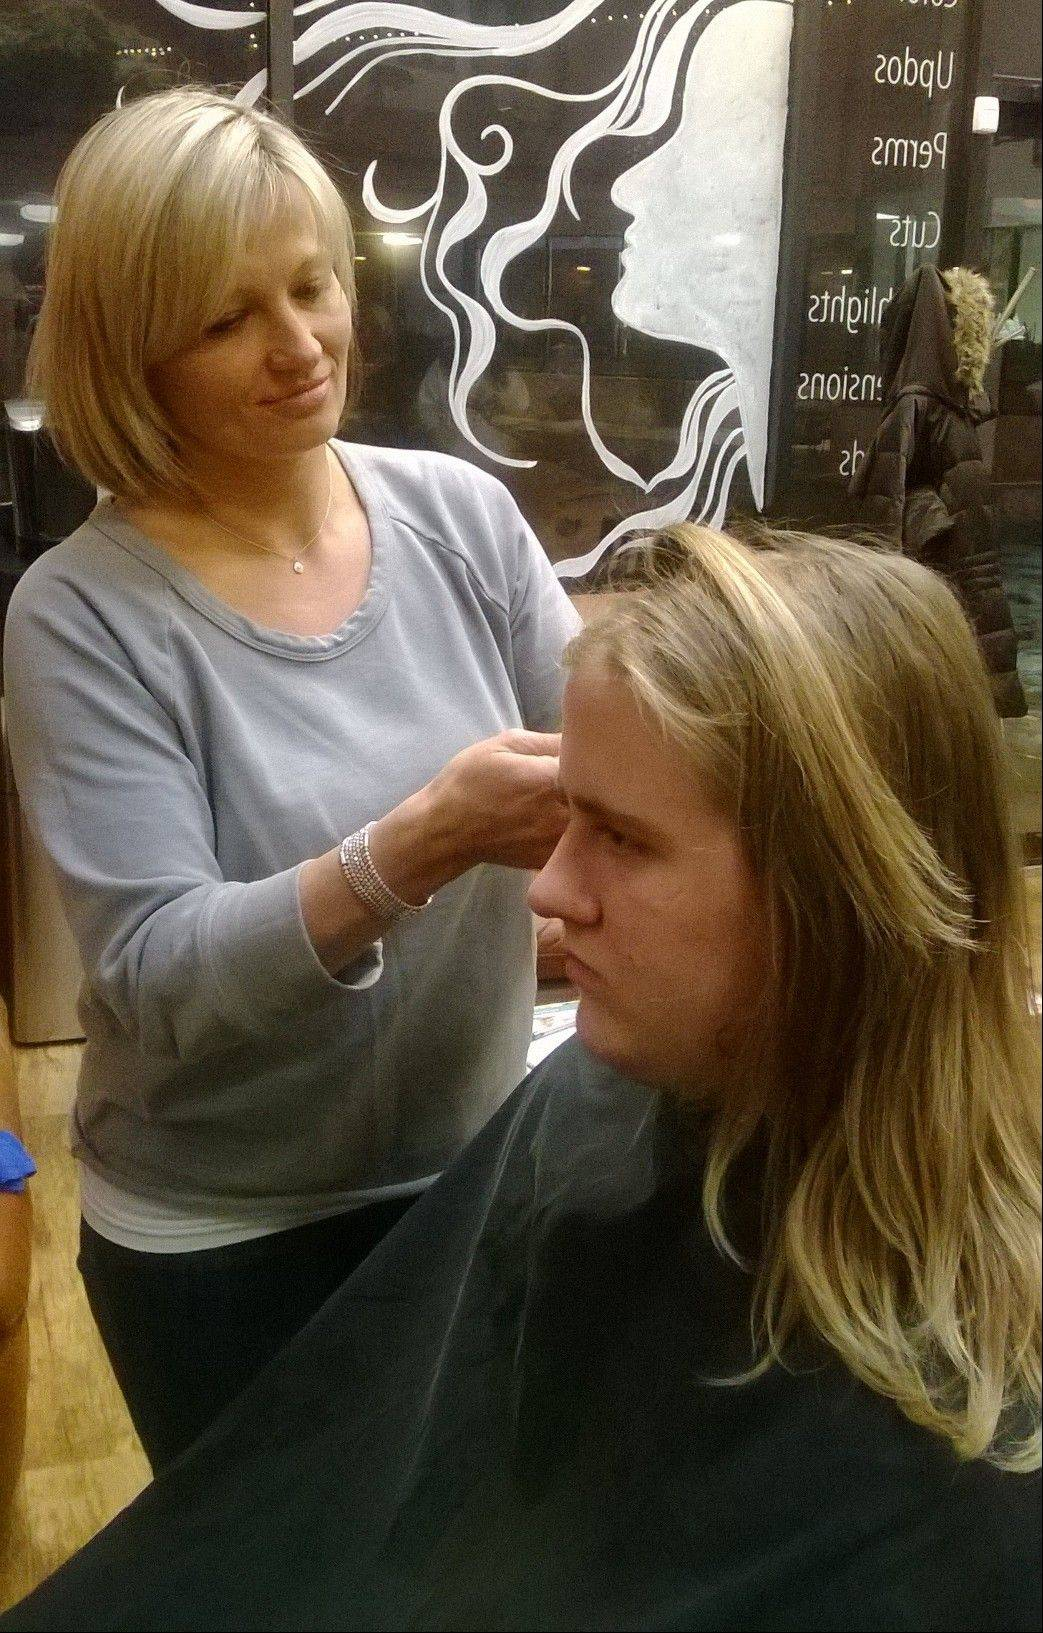 Lake Zurich senior football player Eric Gruninger gets his hair cut Tuesday by Magda Szewczyk, owner of Studio M in Lake Zurich.